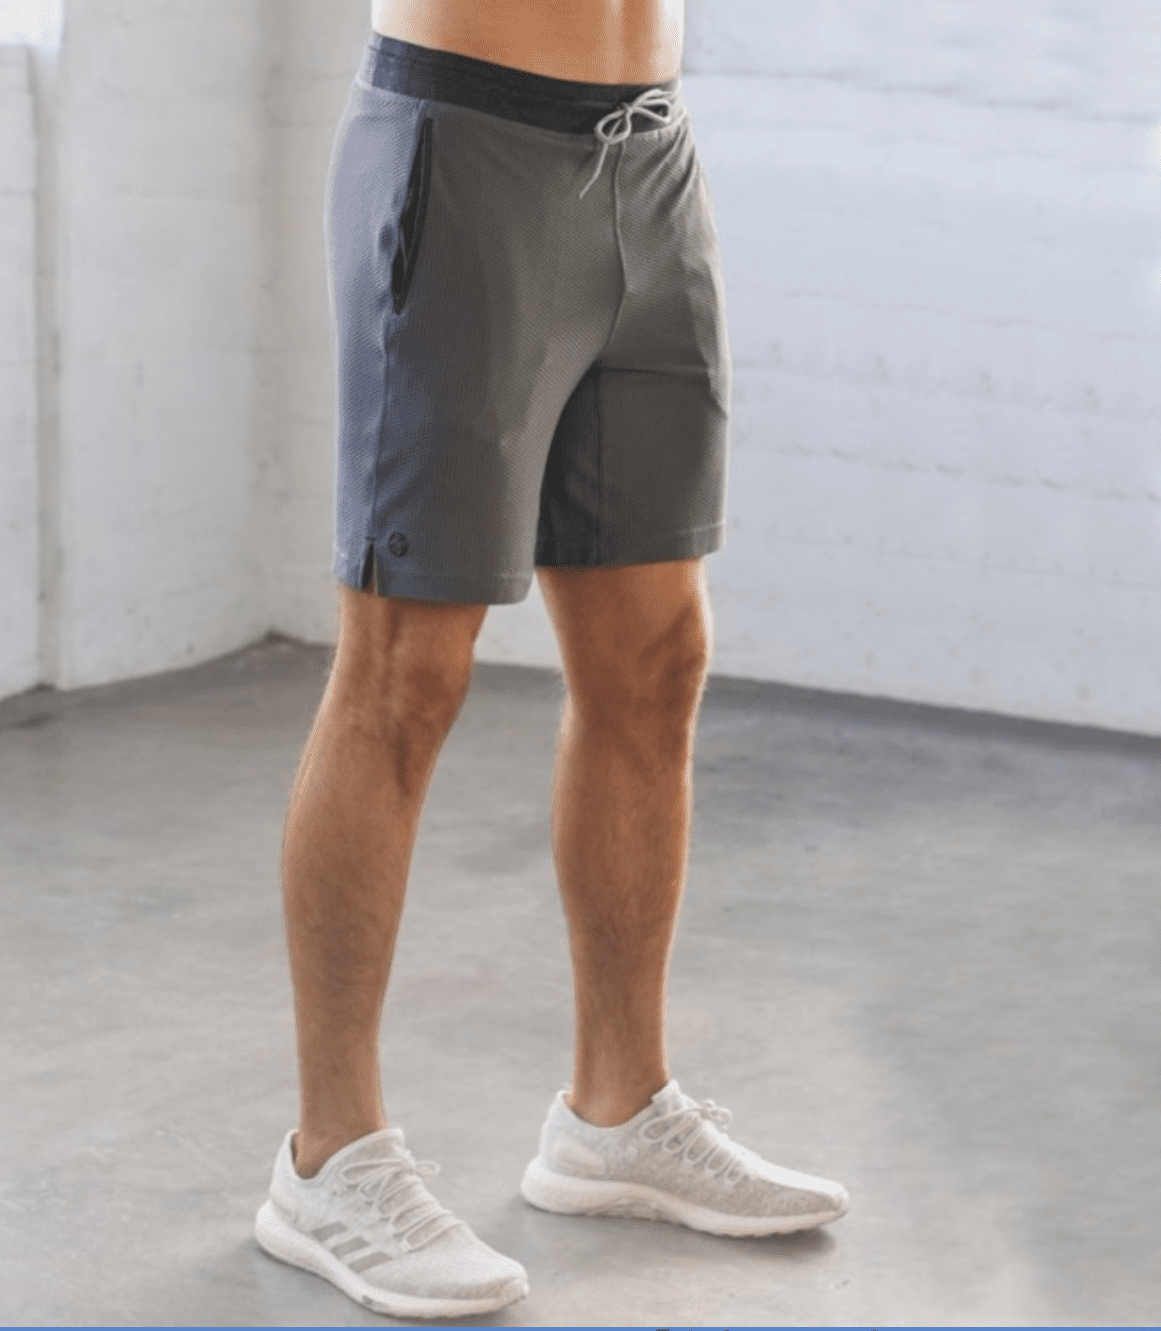 The 5 Best Yoga Shorts For Men To Buy In 2018